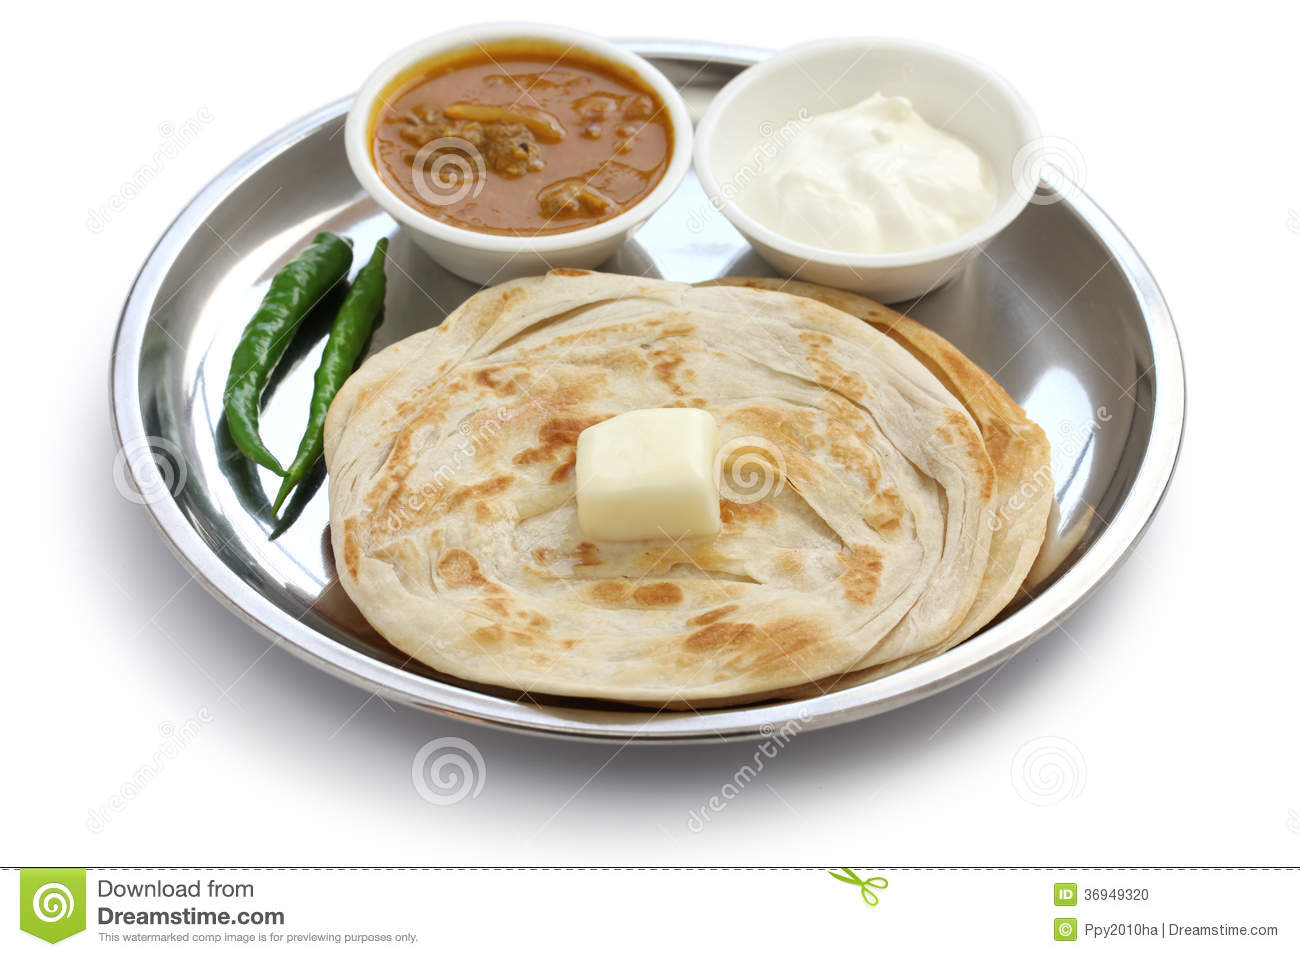 Plain Paratha With Curry And Yogurt Stock Photo - Image: 36949320